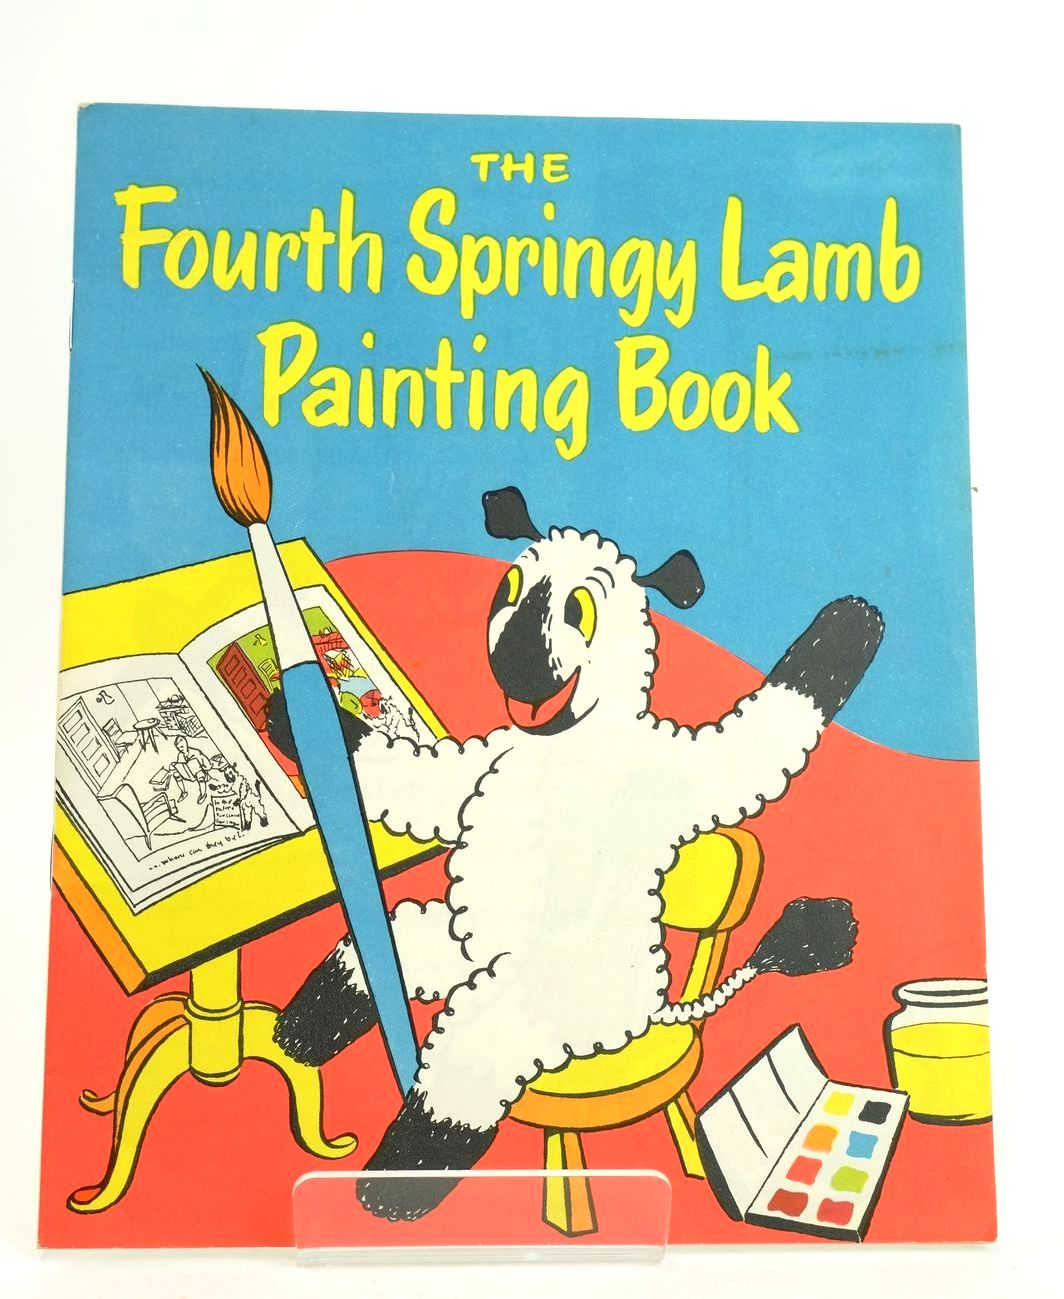 Photo of THE FOURTH SPRINGY LAMB PAINTING BOOK published by Blackwood Morton & Sons Ltd (STOCK CODE: 1318565)  for sale by Stella & Rose's Books